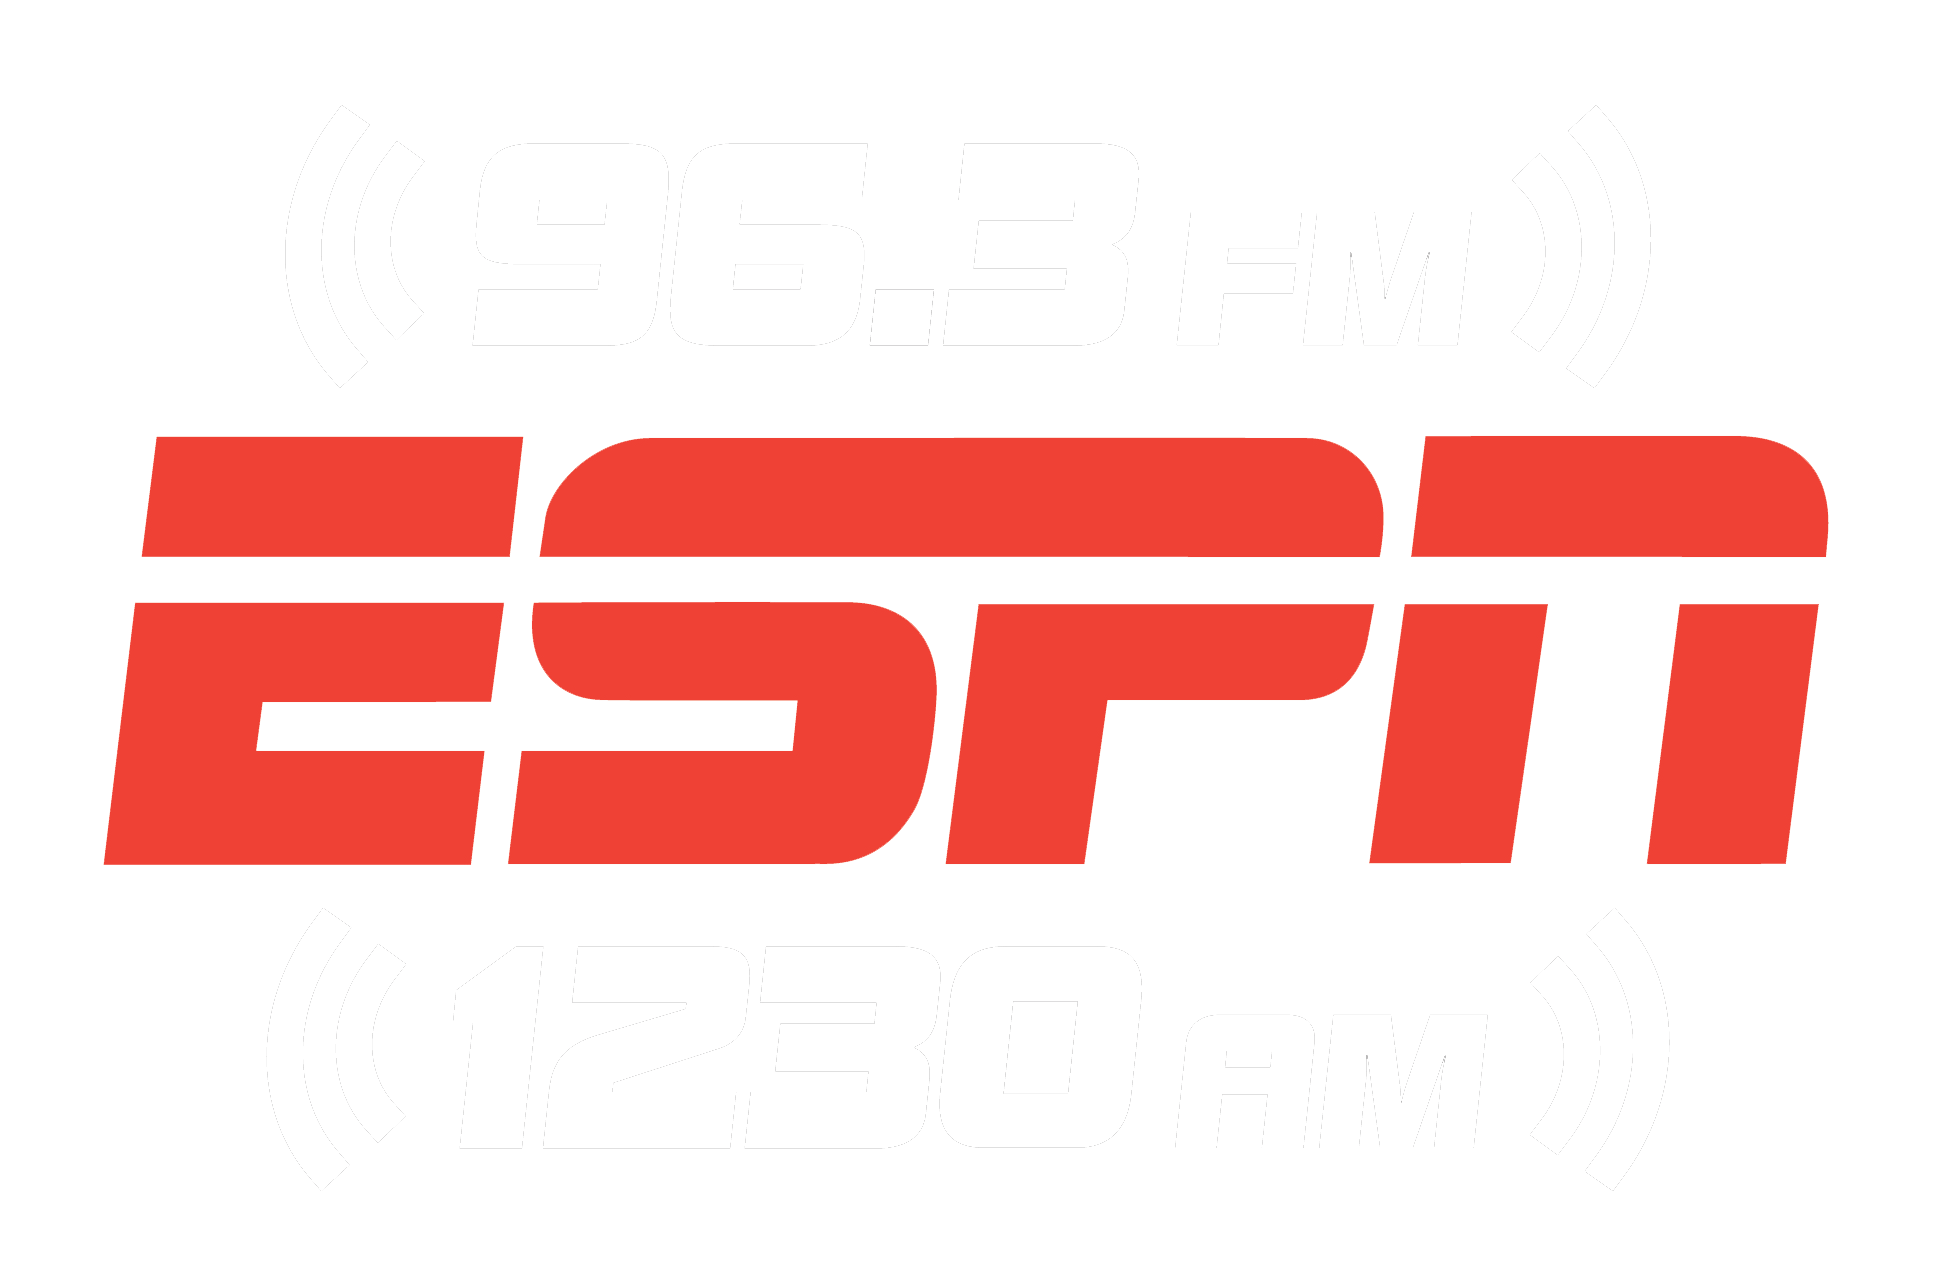 white_ESPN_Radio_96_3_FM_1230_AM_transparent_bg